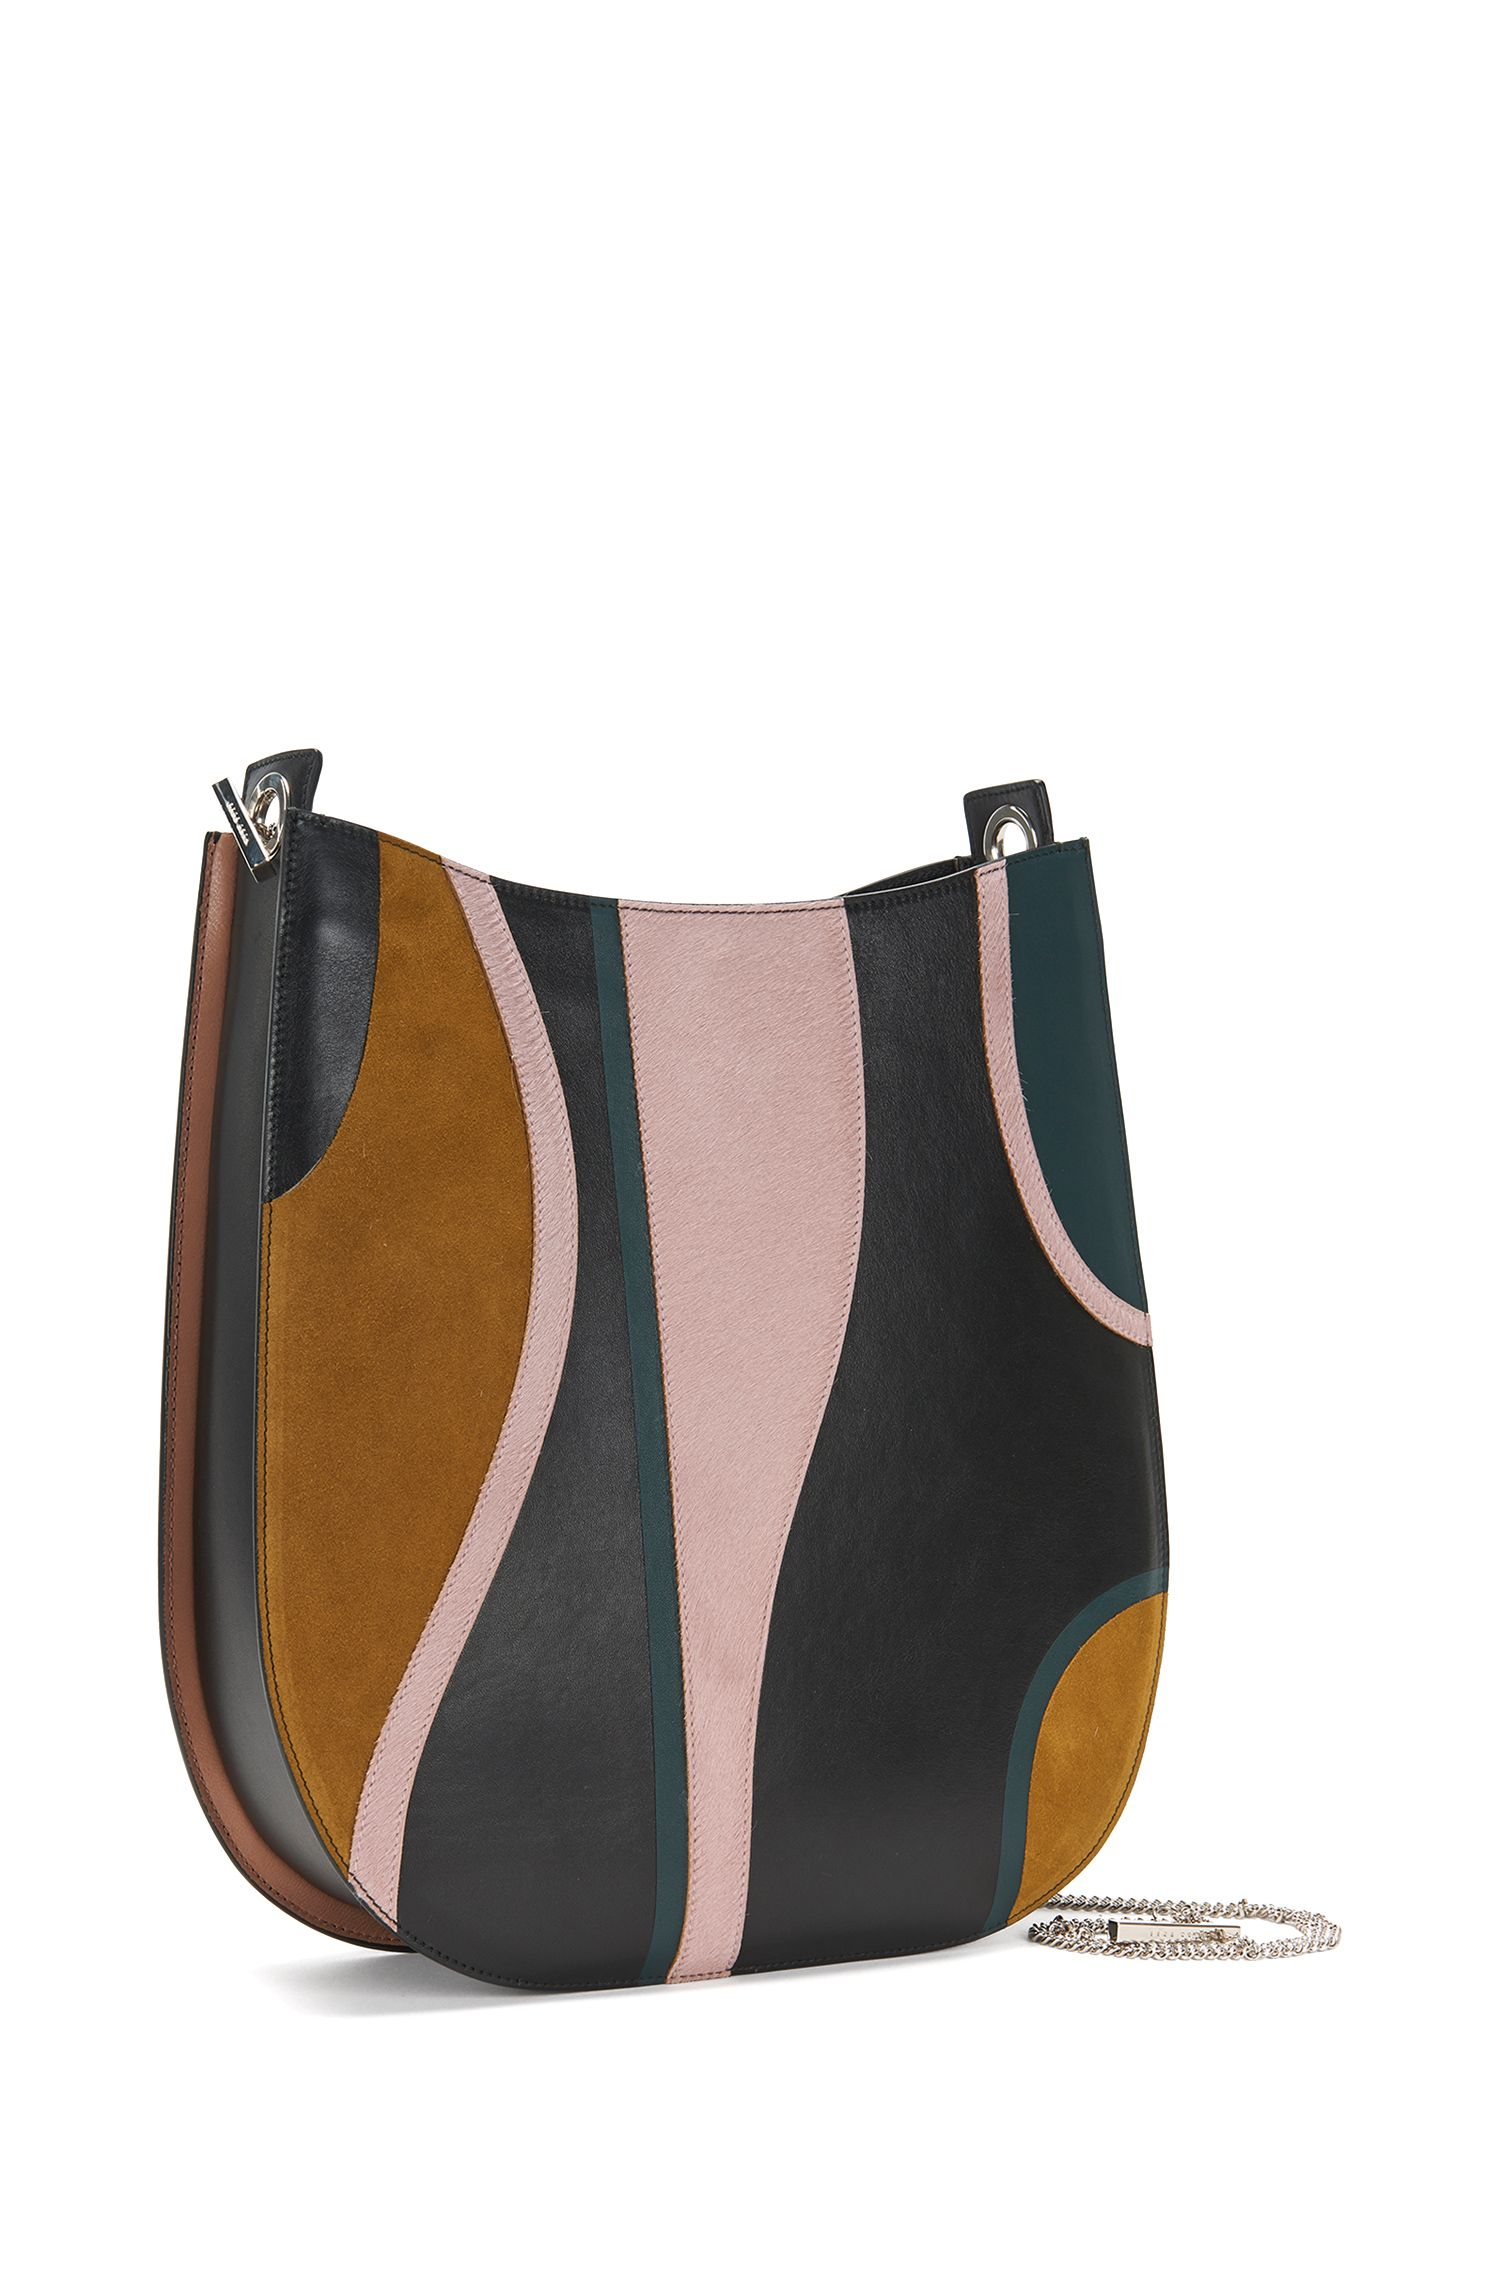 'BOSS Bespoke H S-G' | Italian Leather Patchwork Hobo Bag, Detachable Chain Strap